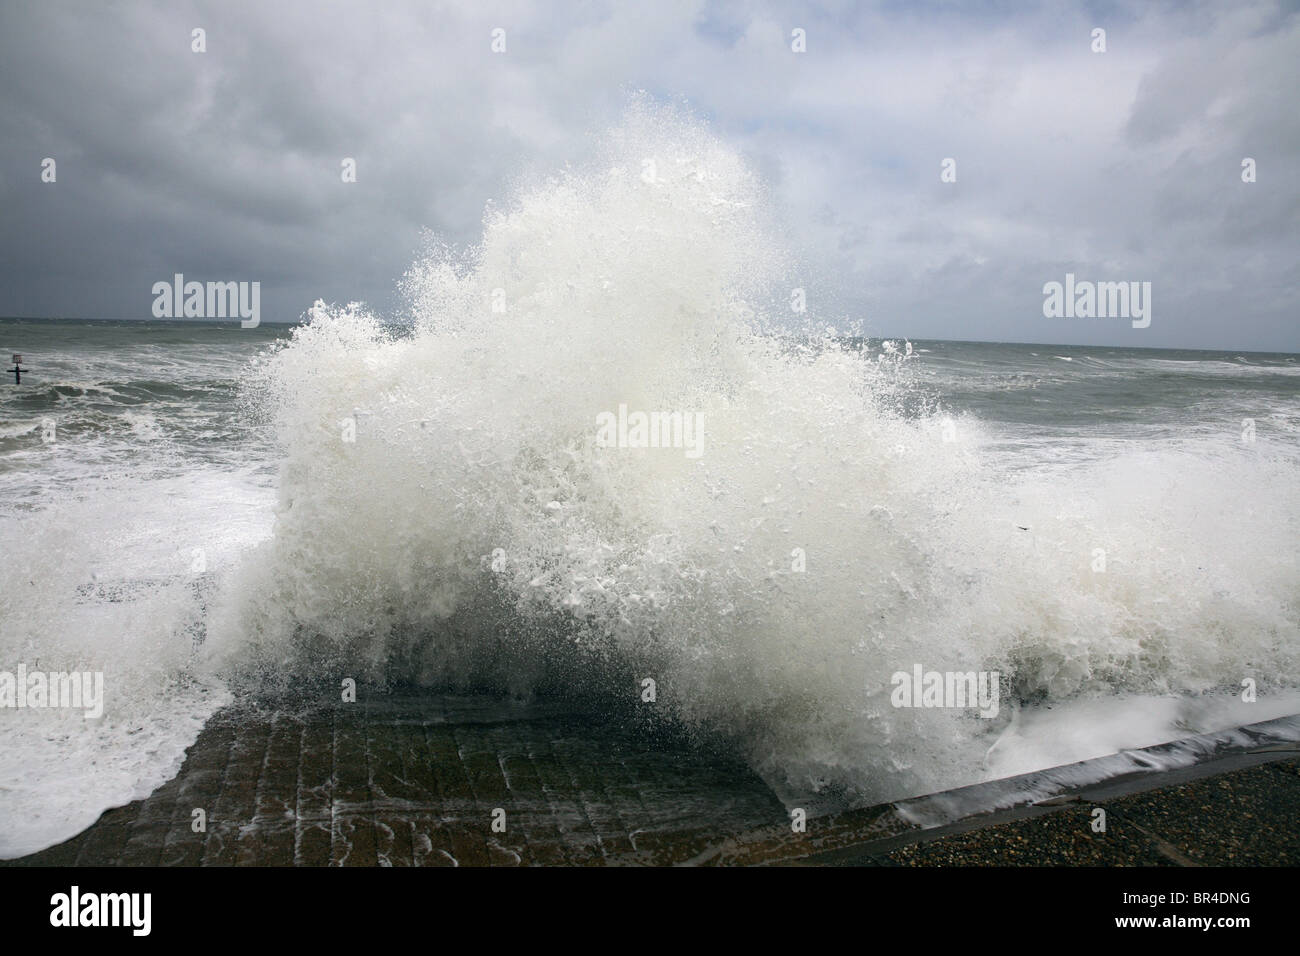 Stormy sea waves crashing against a sea wall on the Norfolk coast. - Stock Image